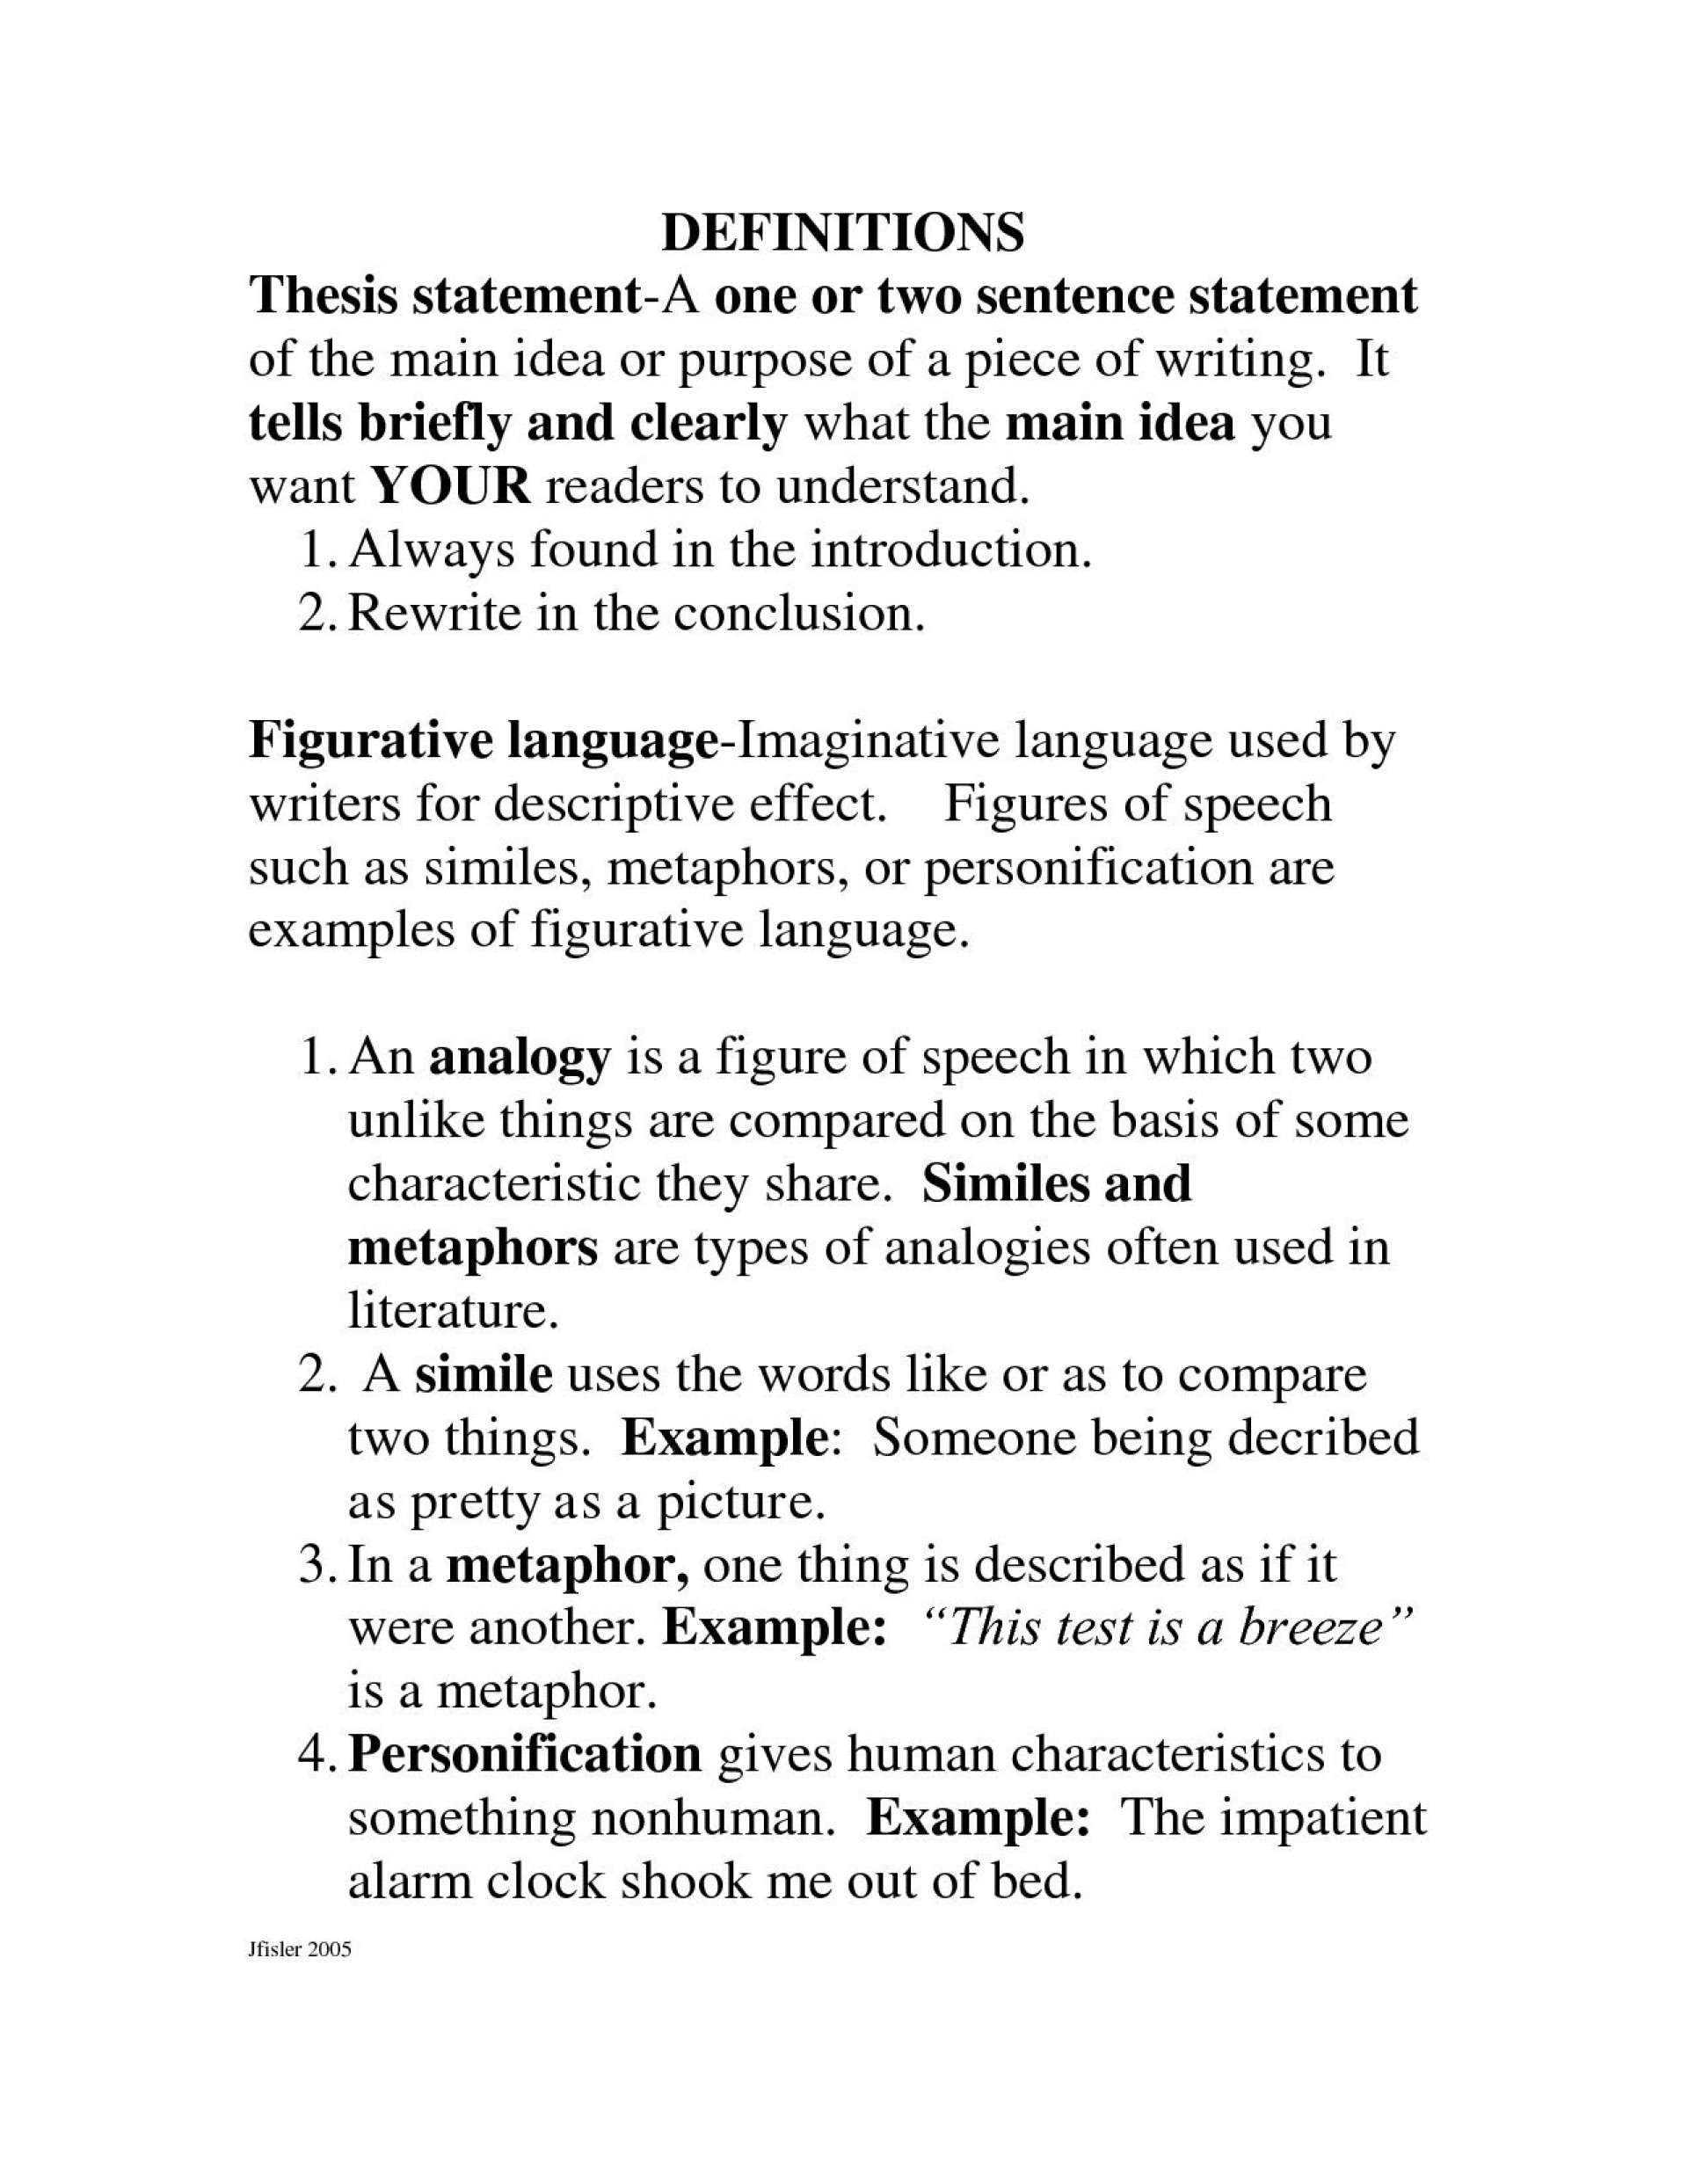 Help writing a thesis essay